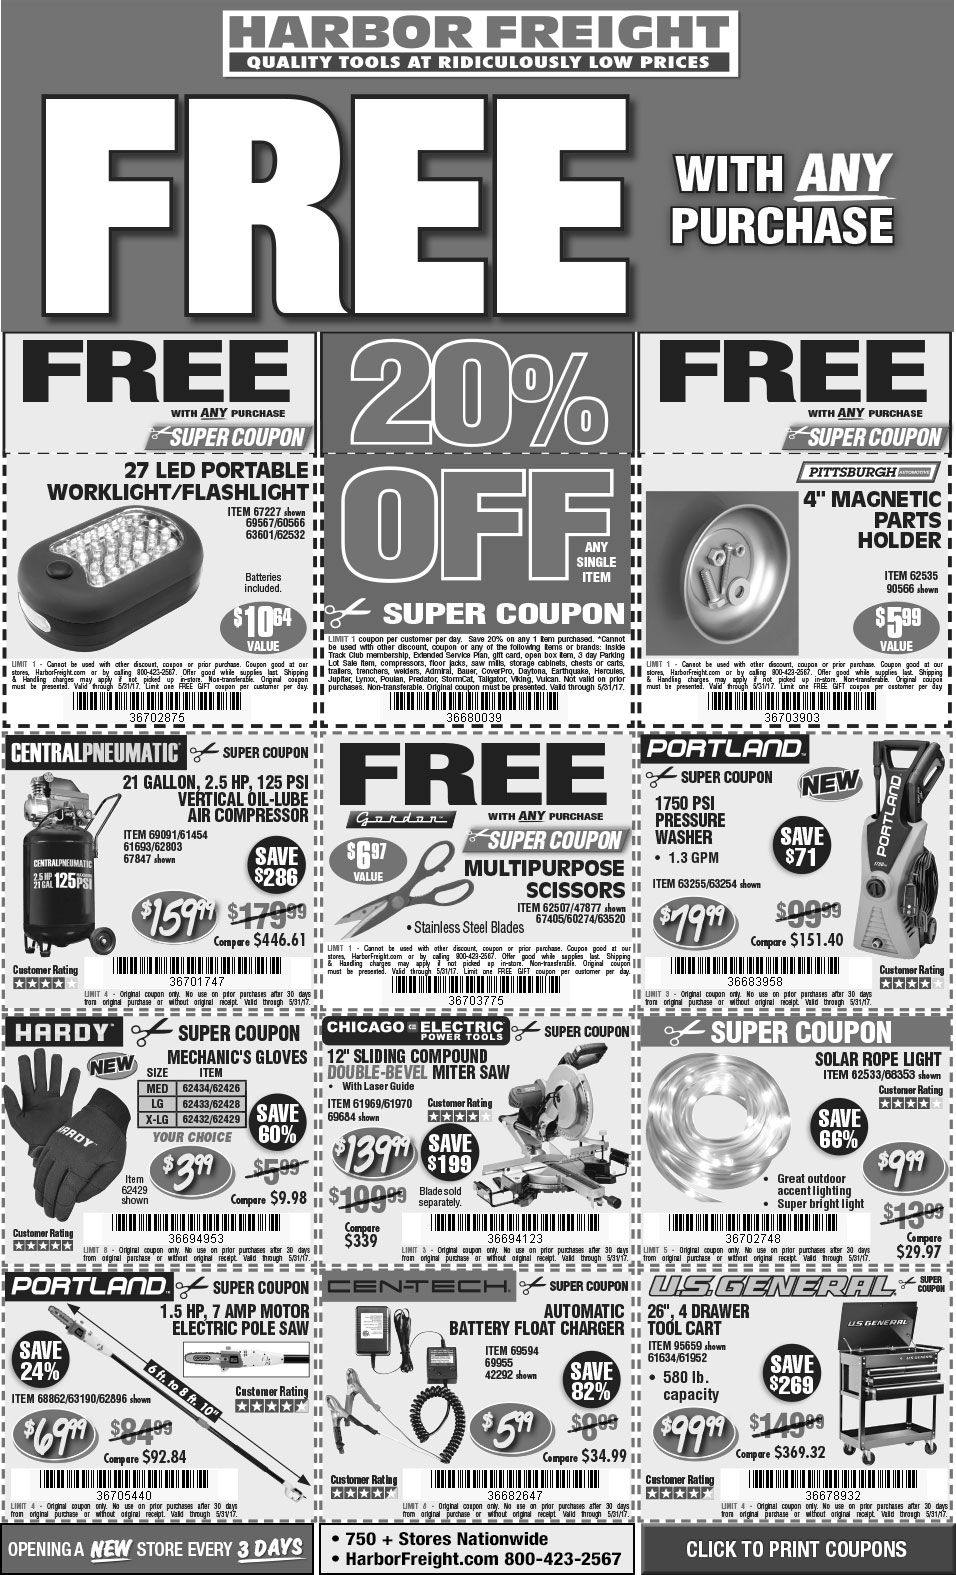 It's just an image of Old Fashioned Harbor Freight Super Coupon Printable